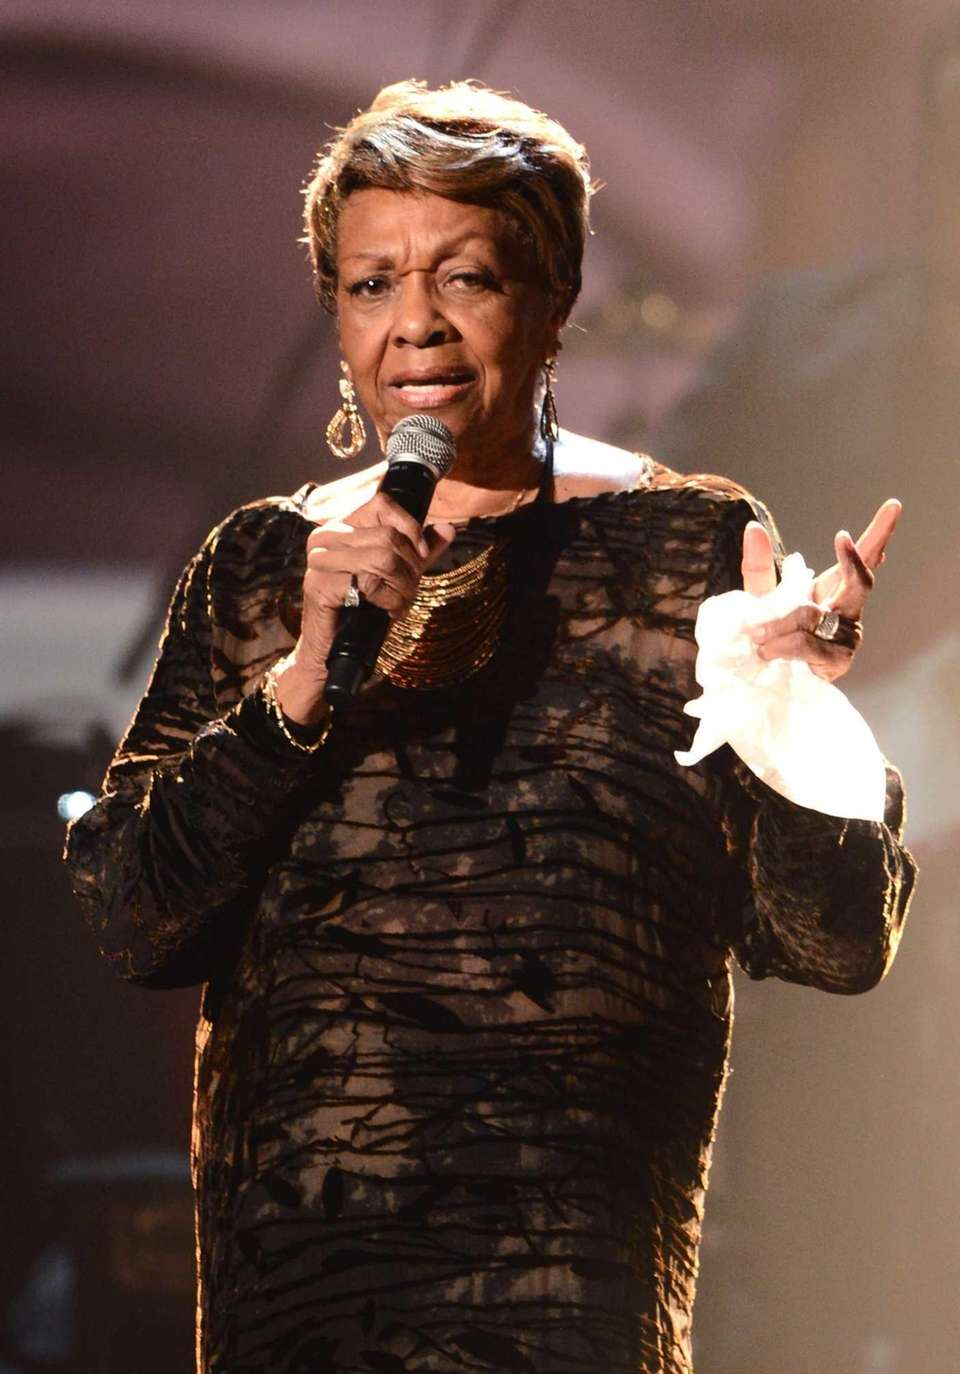 Cissy Houston performs onstage during the 2012 BET